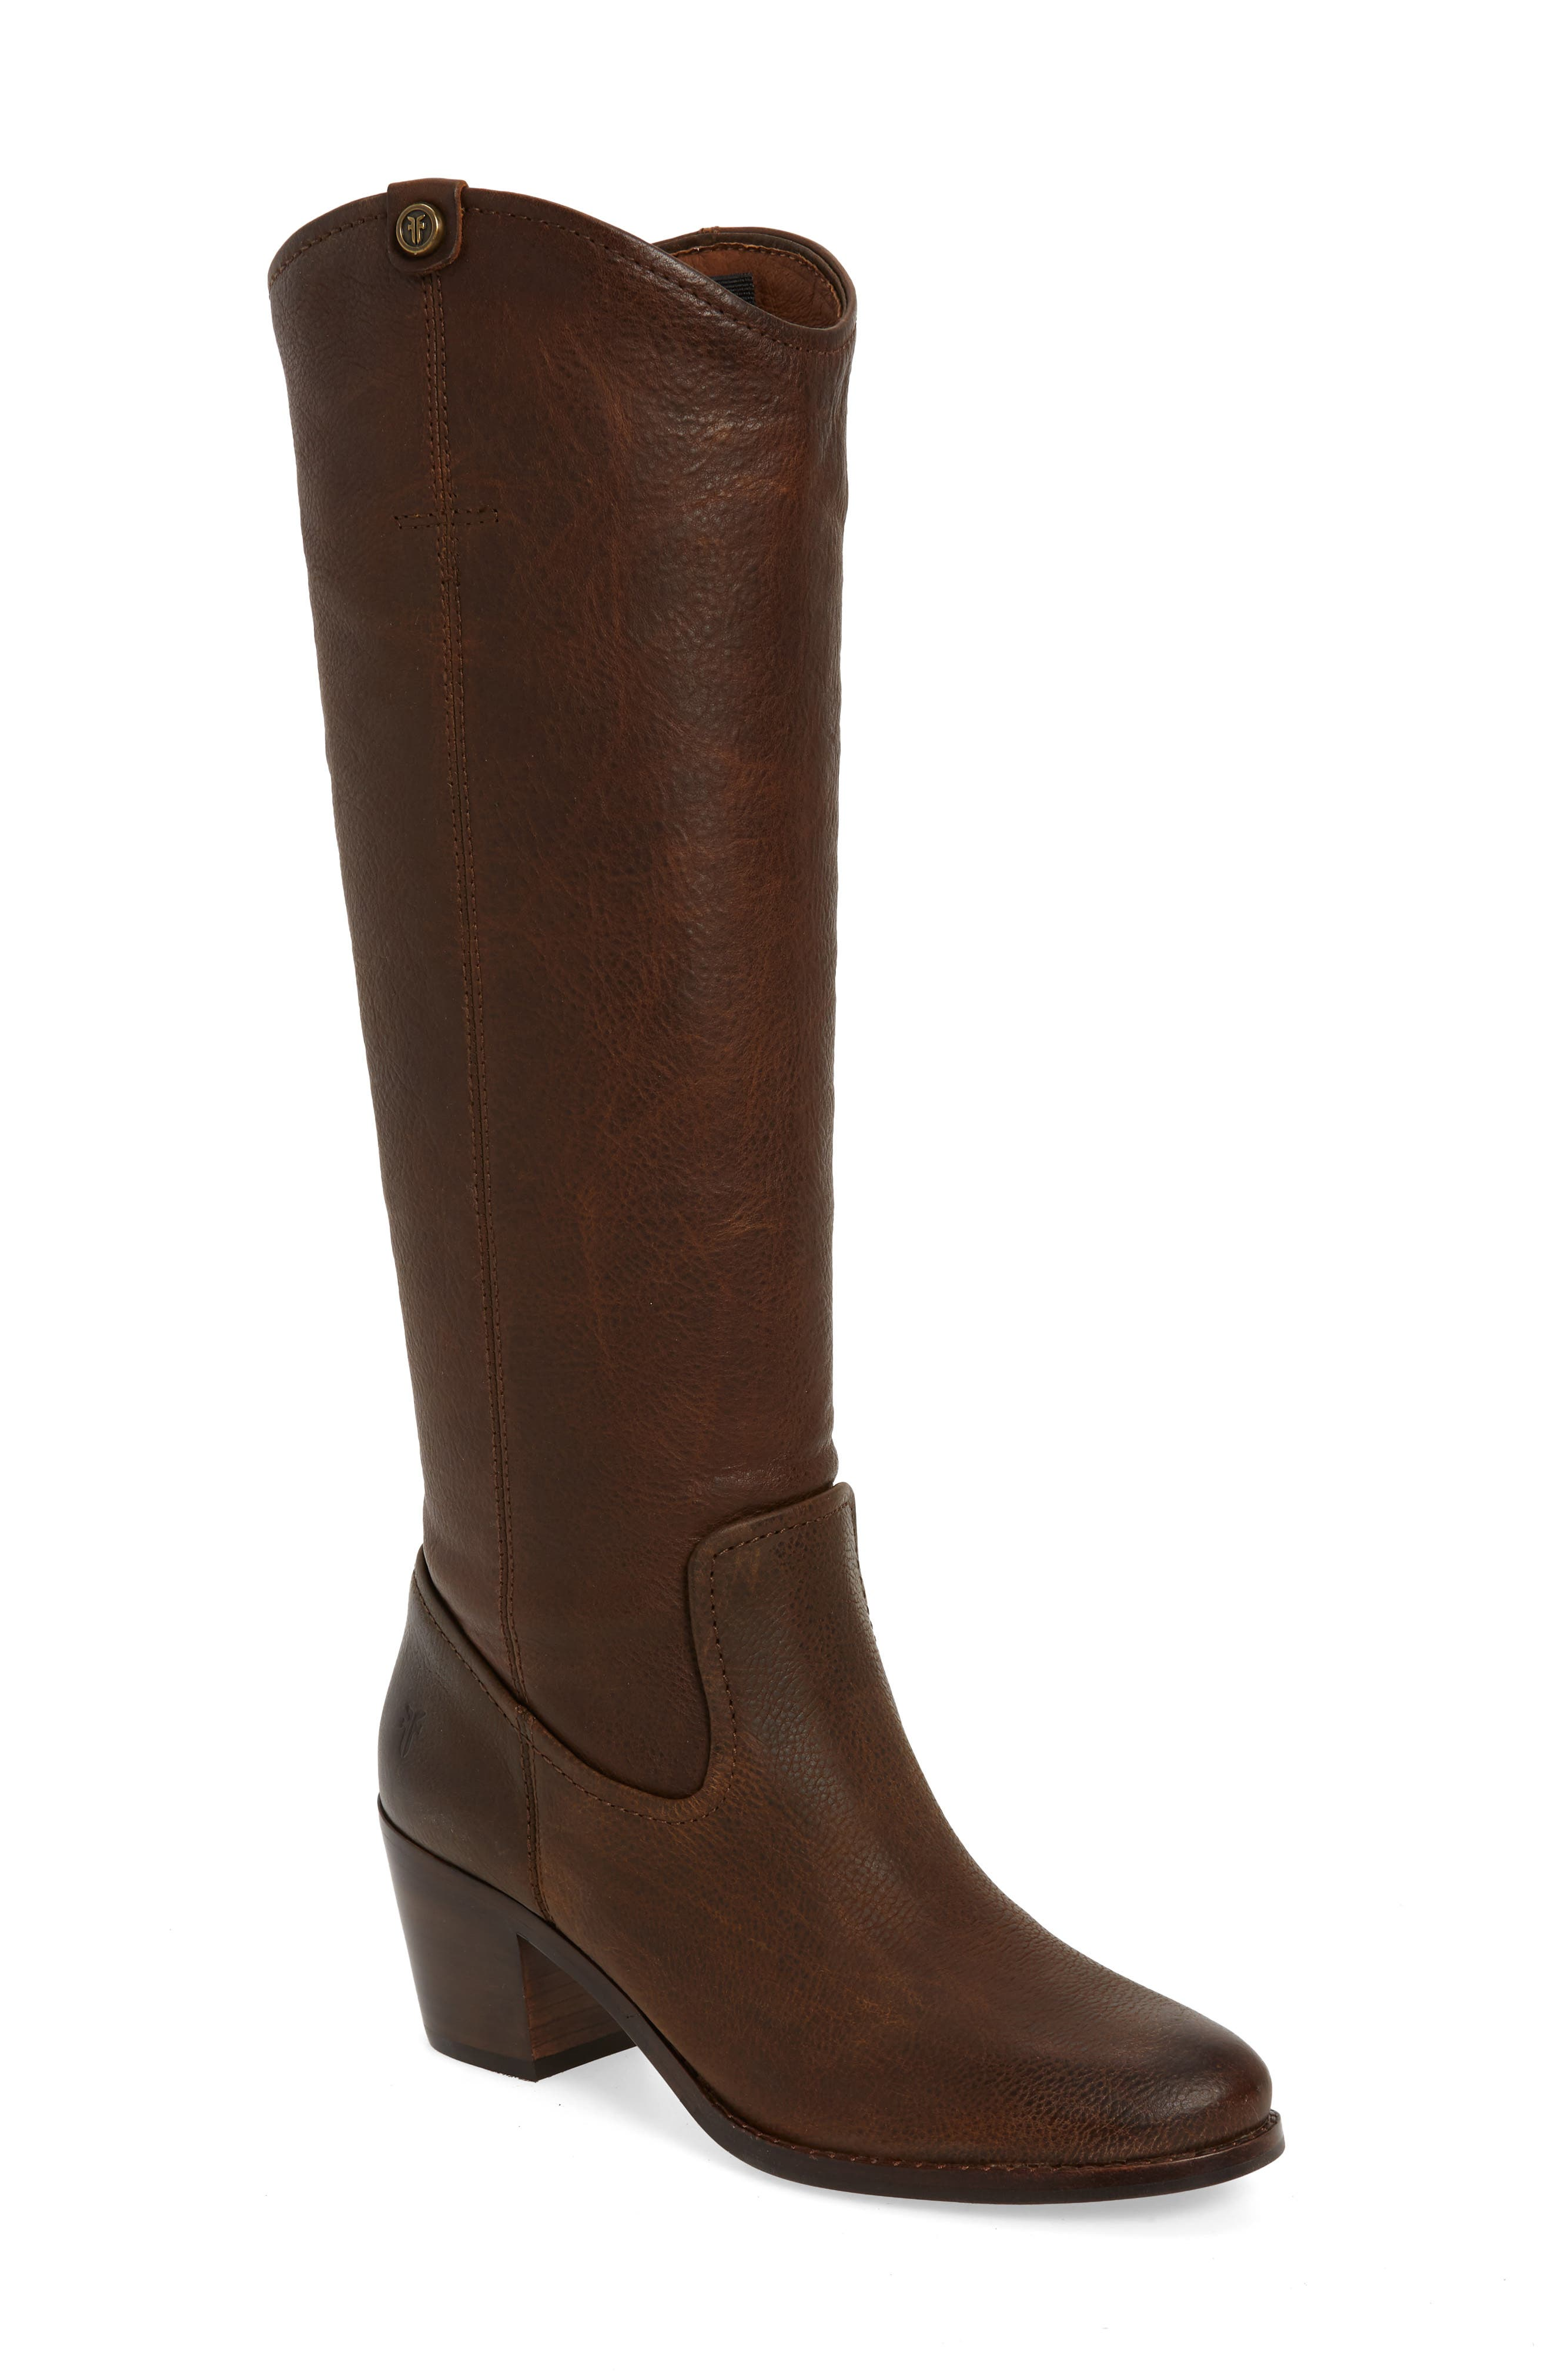 Frye Jolene Pull-On Knee High Boot, Brown